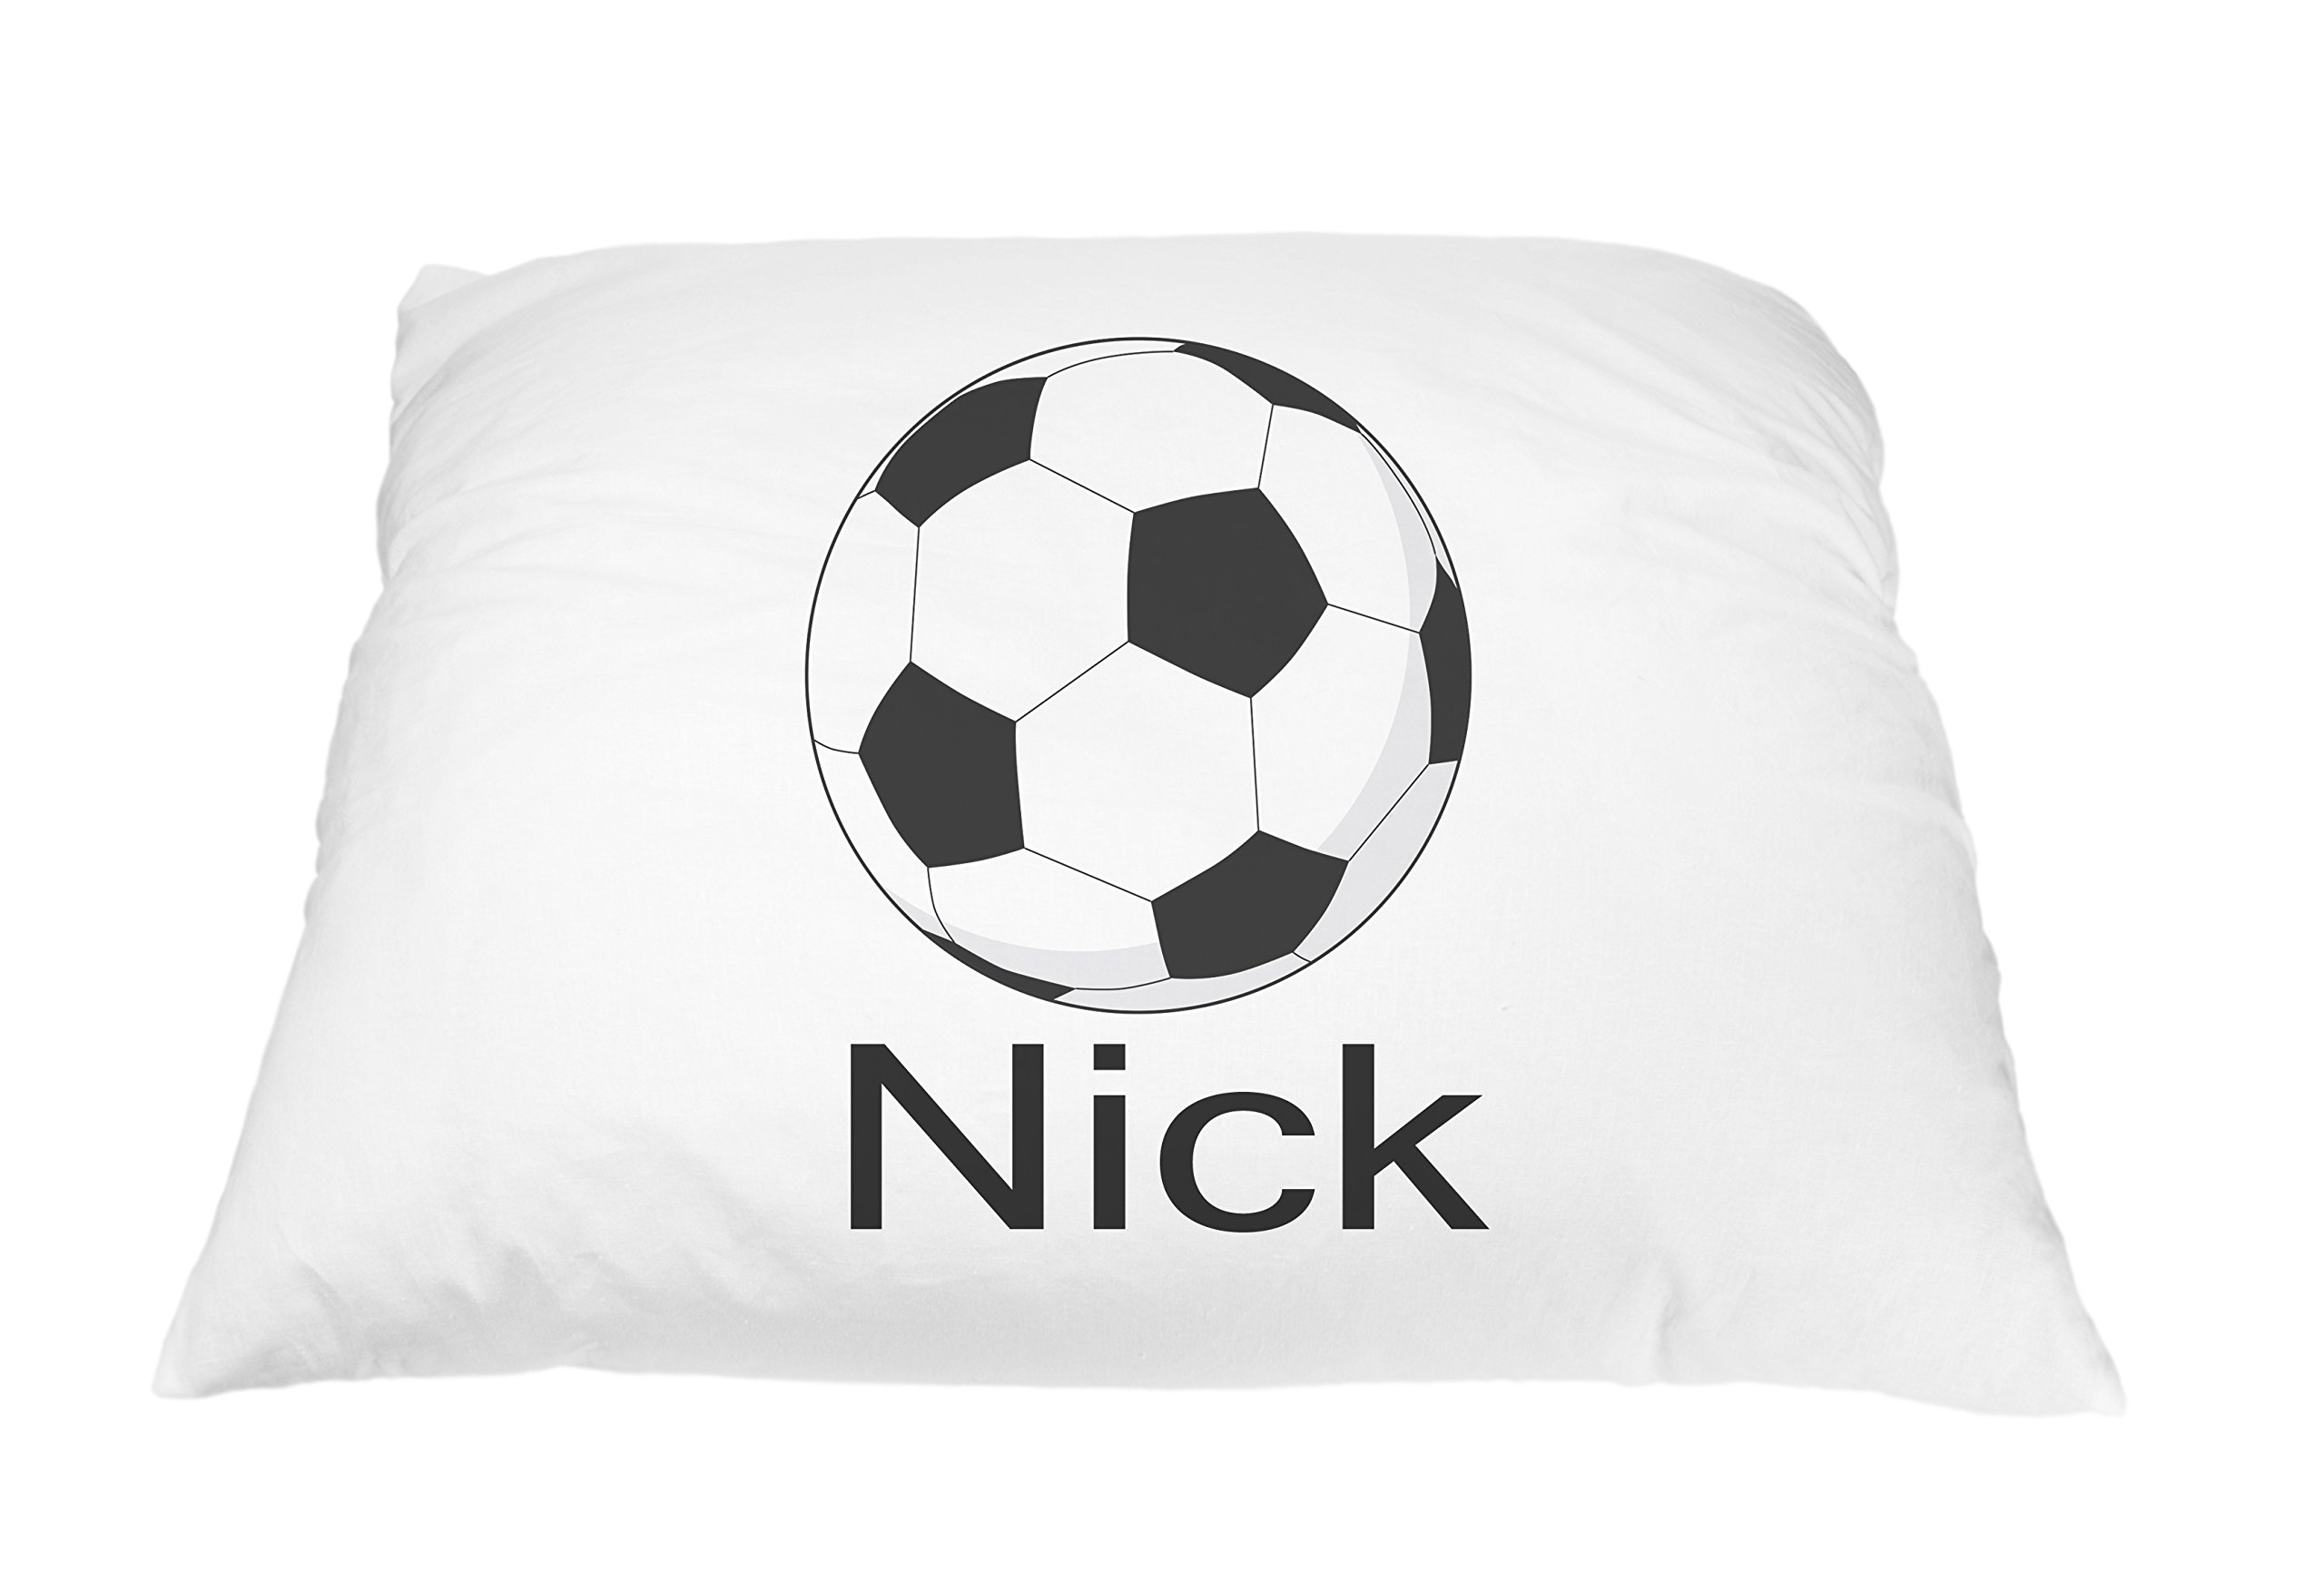 Personalized Kid's Soccer Ball Sports Pillowcase Microfiber Polyester Standard 20 by 30 Inches, Kids Bedding Pillows, Custom Pillowcase, Soccer Pillow Cover, Soccer Gift Personalized Pillows for Kids